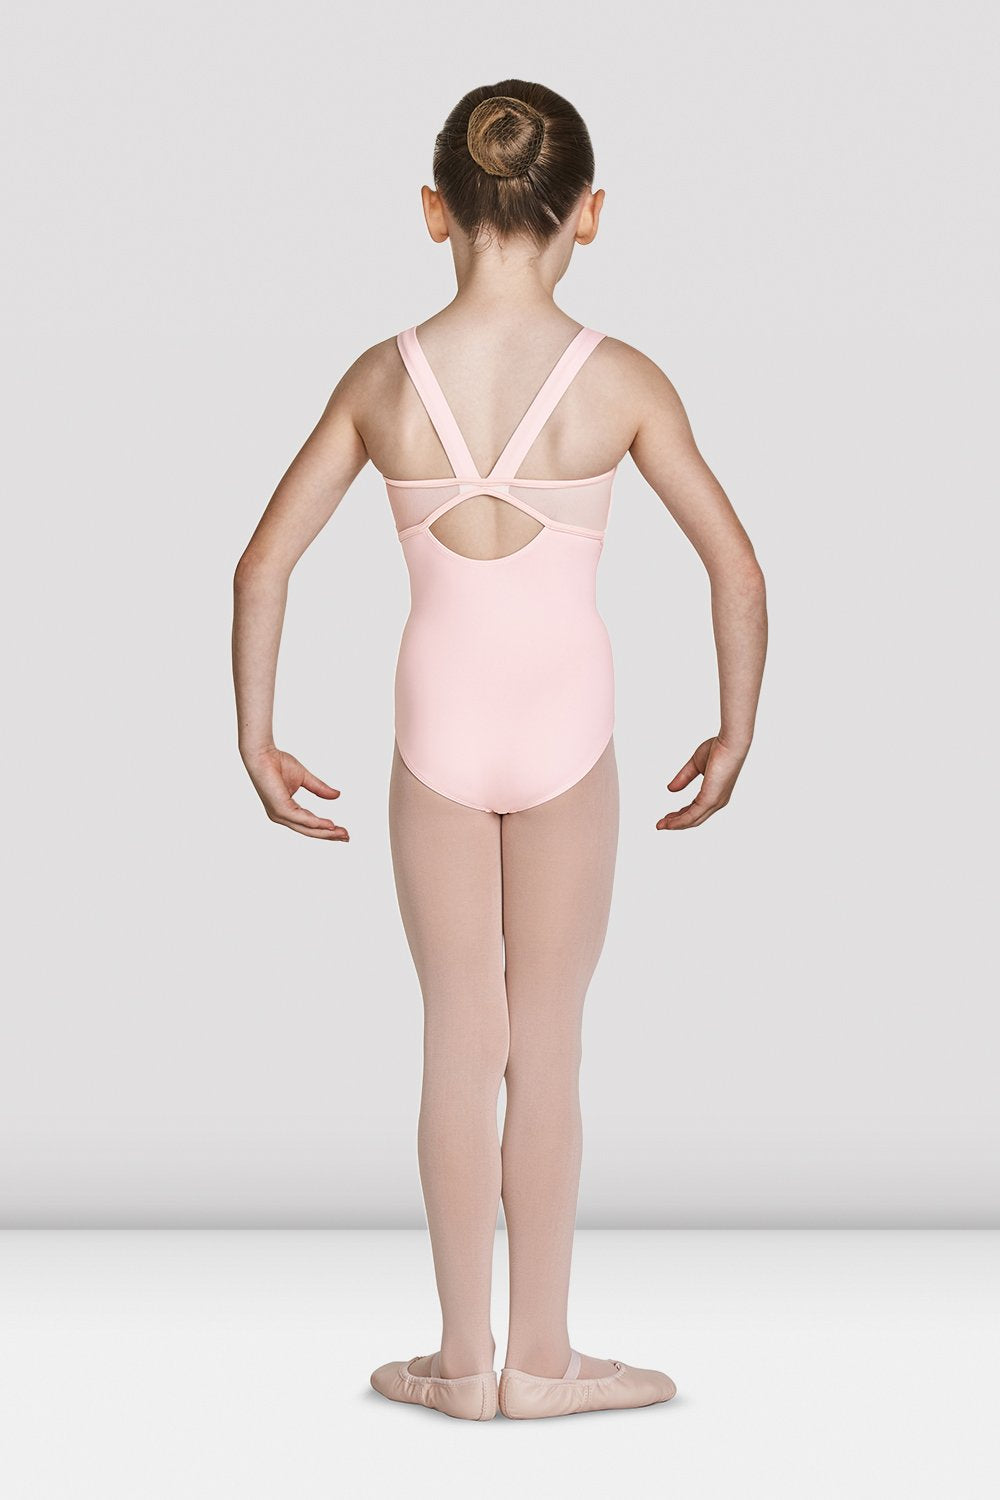 Pink Bloch Girls Open Back Camisole Leotard on female model feet in first position with arms in demi bras facing the back